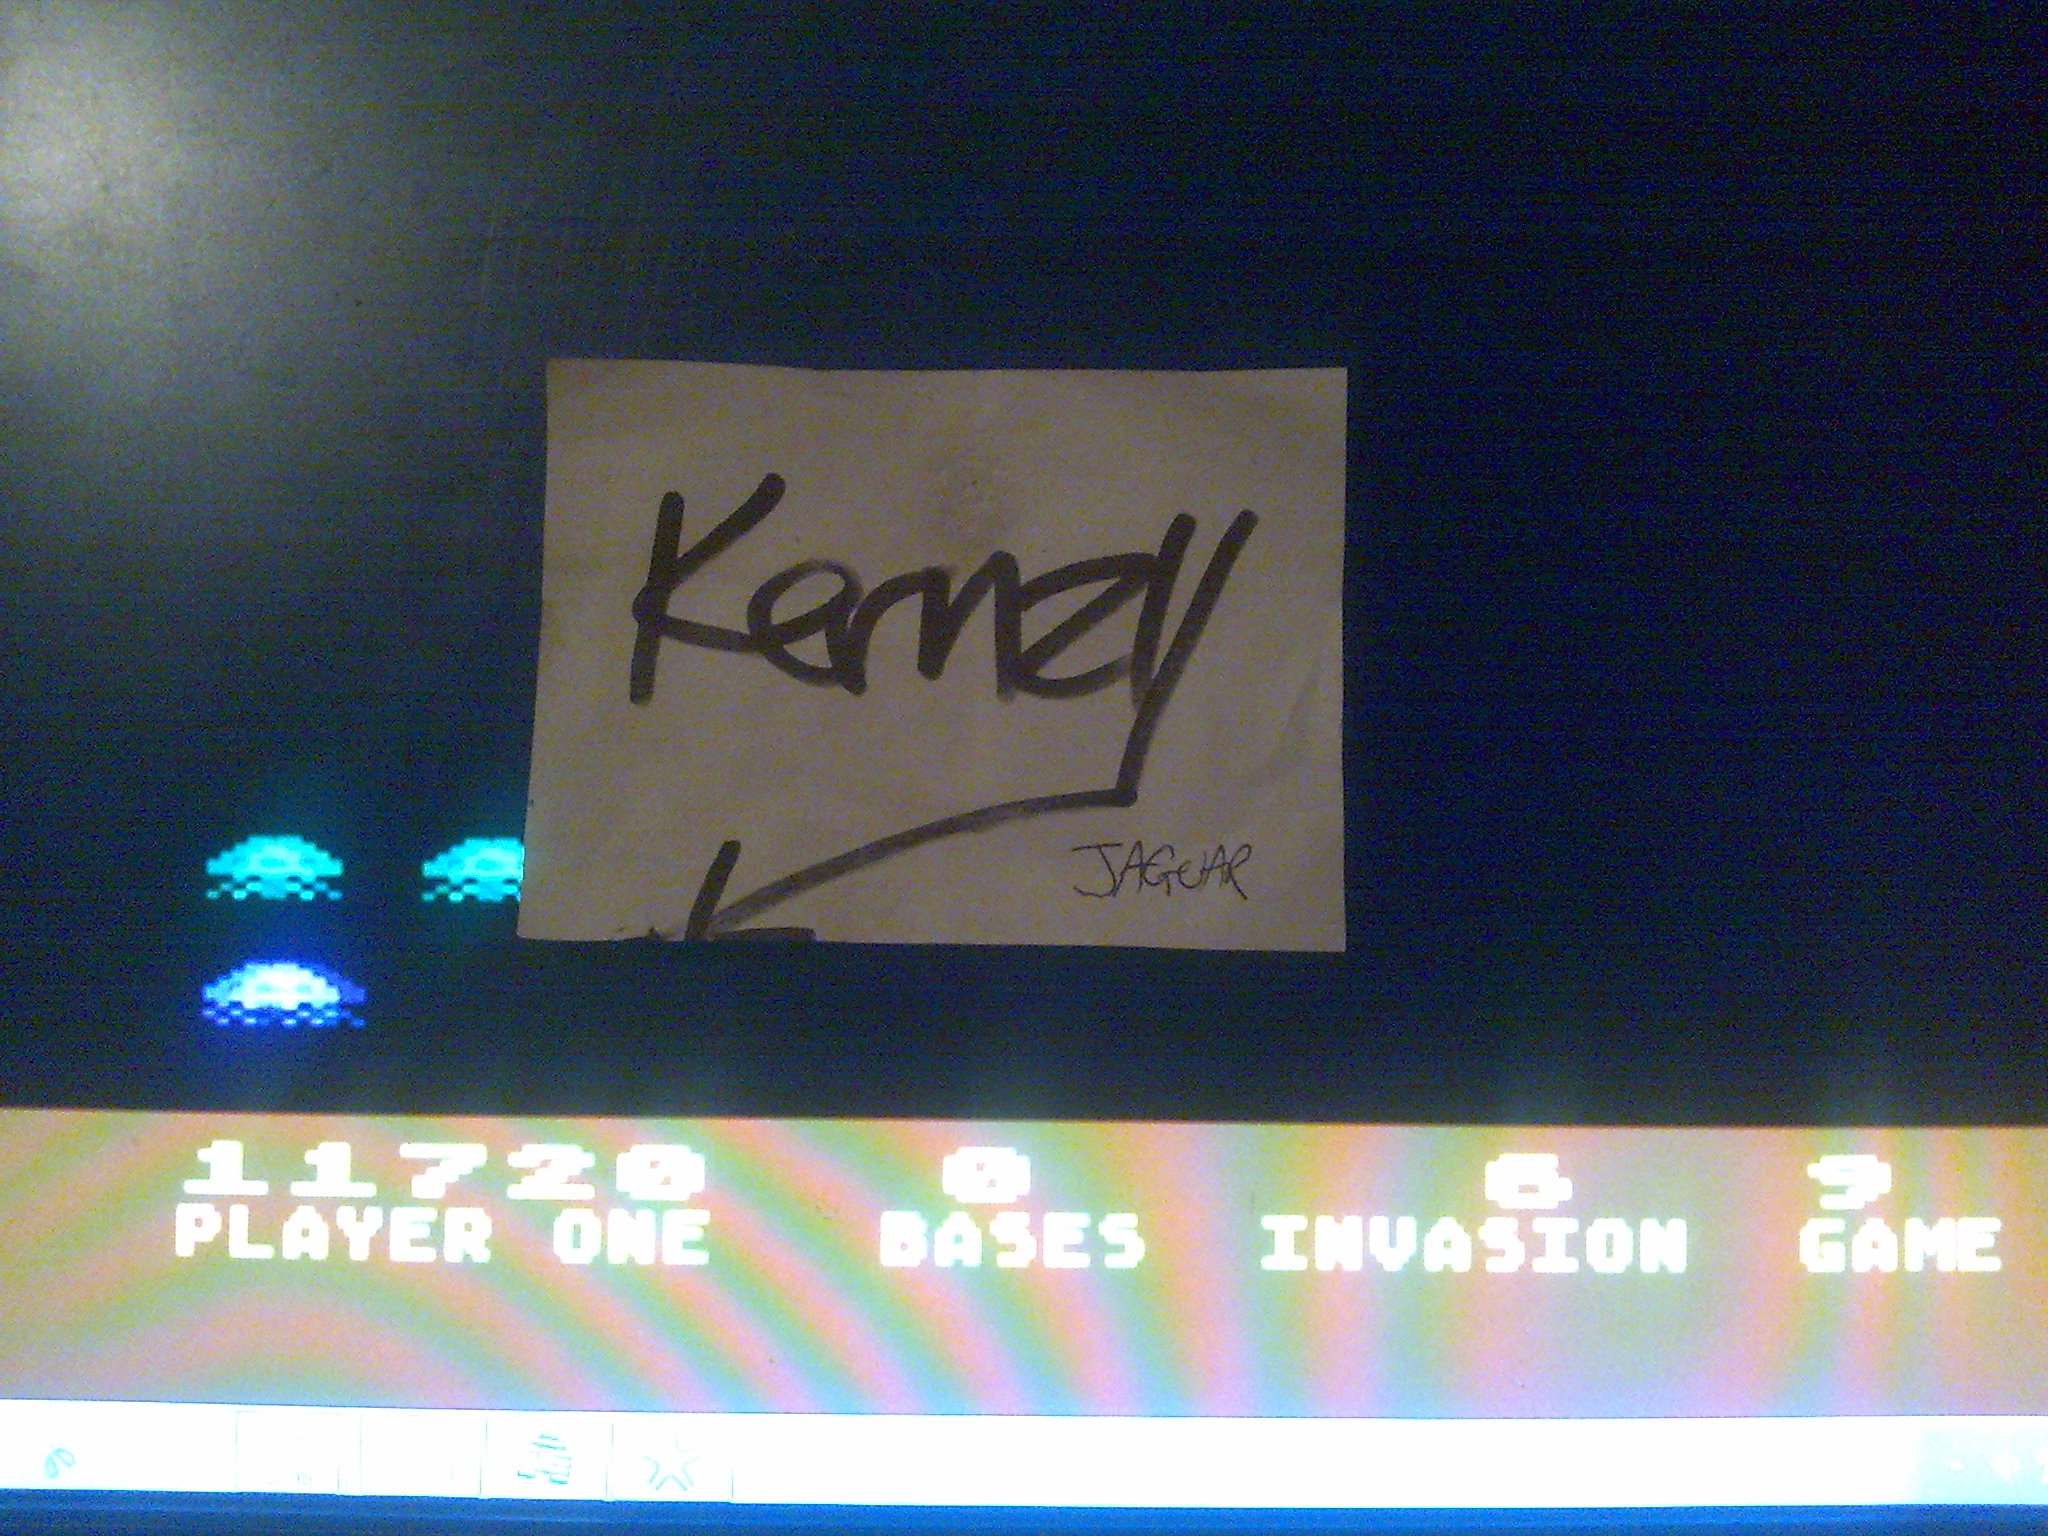 kernzy: Atari Invaders [Game 9] (Atari 400/800/XL/XE Emulated) 11,720 points on 2014-10-21 23:44:15